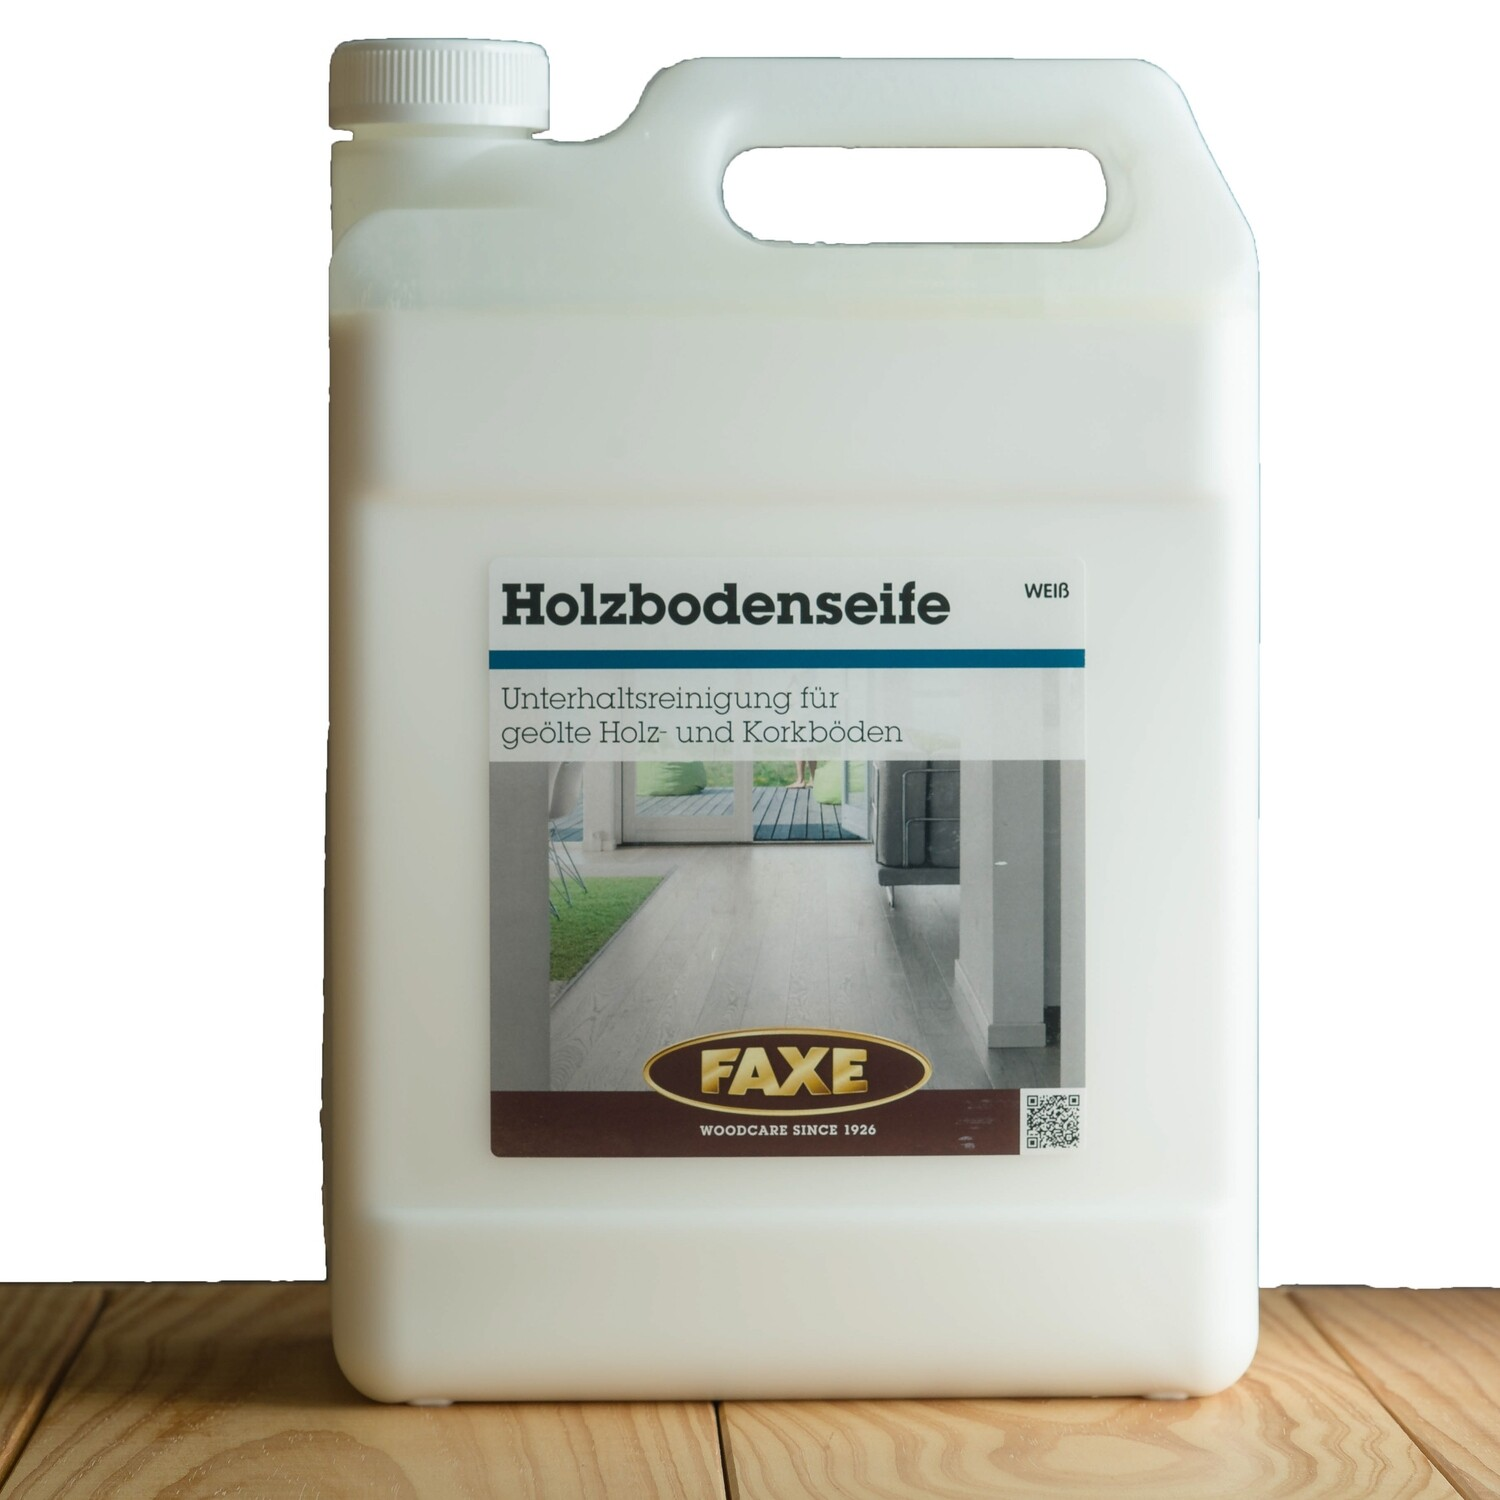 Faxe Holzbodenseife weiß 5,0 l